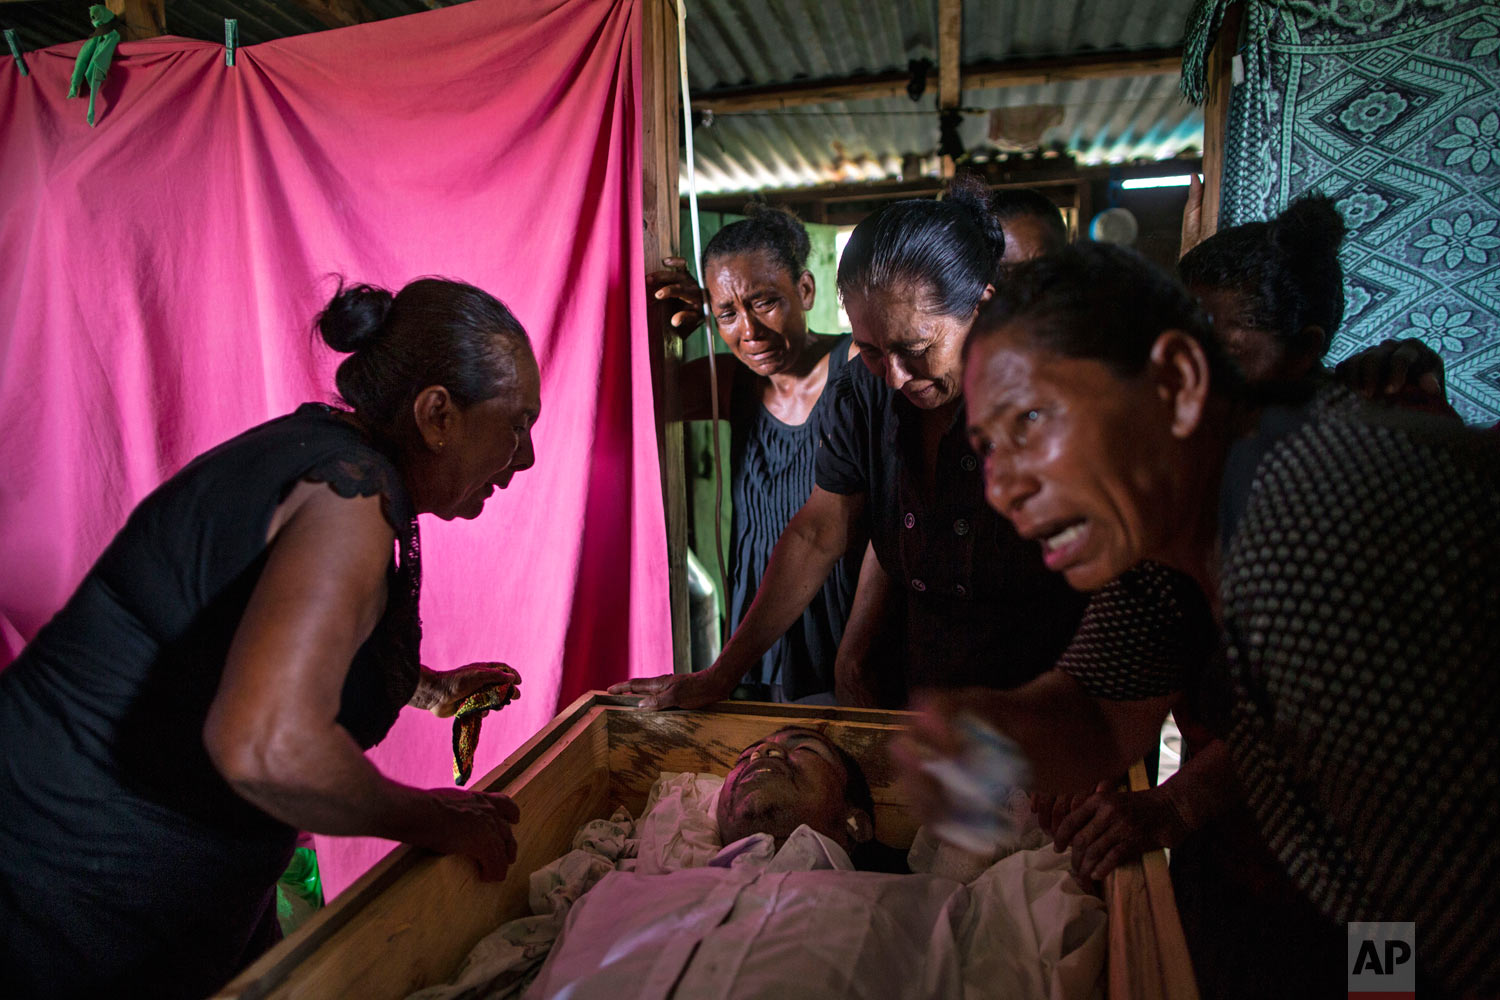 In this Sept. 2, 2018 photo, Sonia Wills, left, accompanied by relatives, mourns over the coffin that contain the remains of her son, Miskito diver Oscar Salomon Charly, 31, during a wake in her home, in Cabo Gracias a Dios, Nicaragua. (AP Photo/Rodrigo Abd)